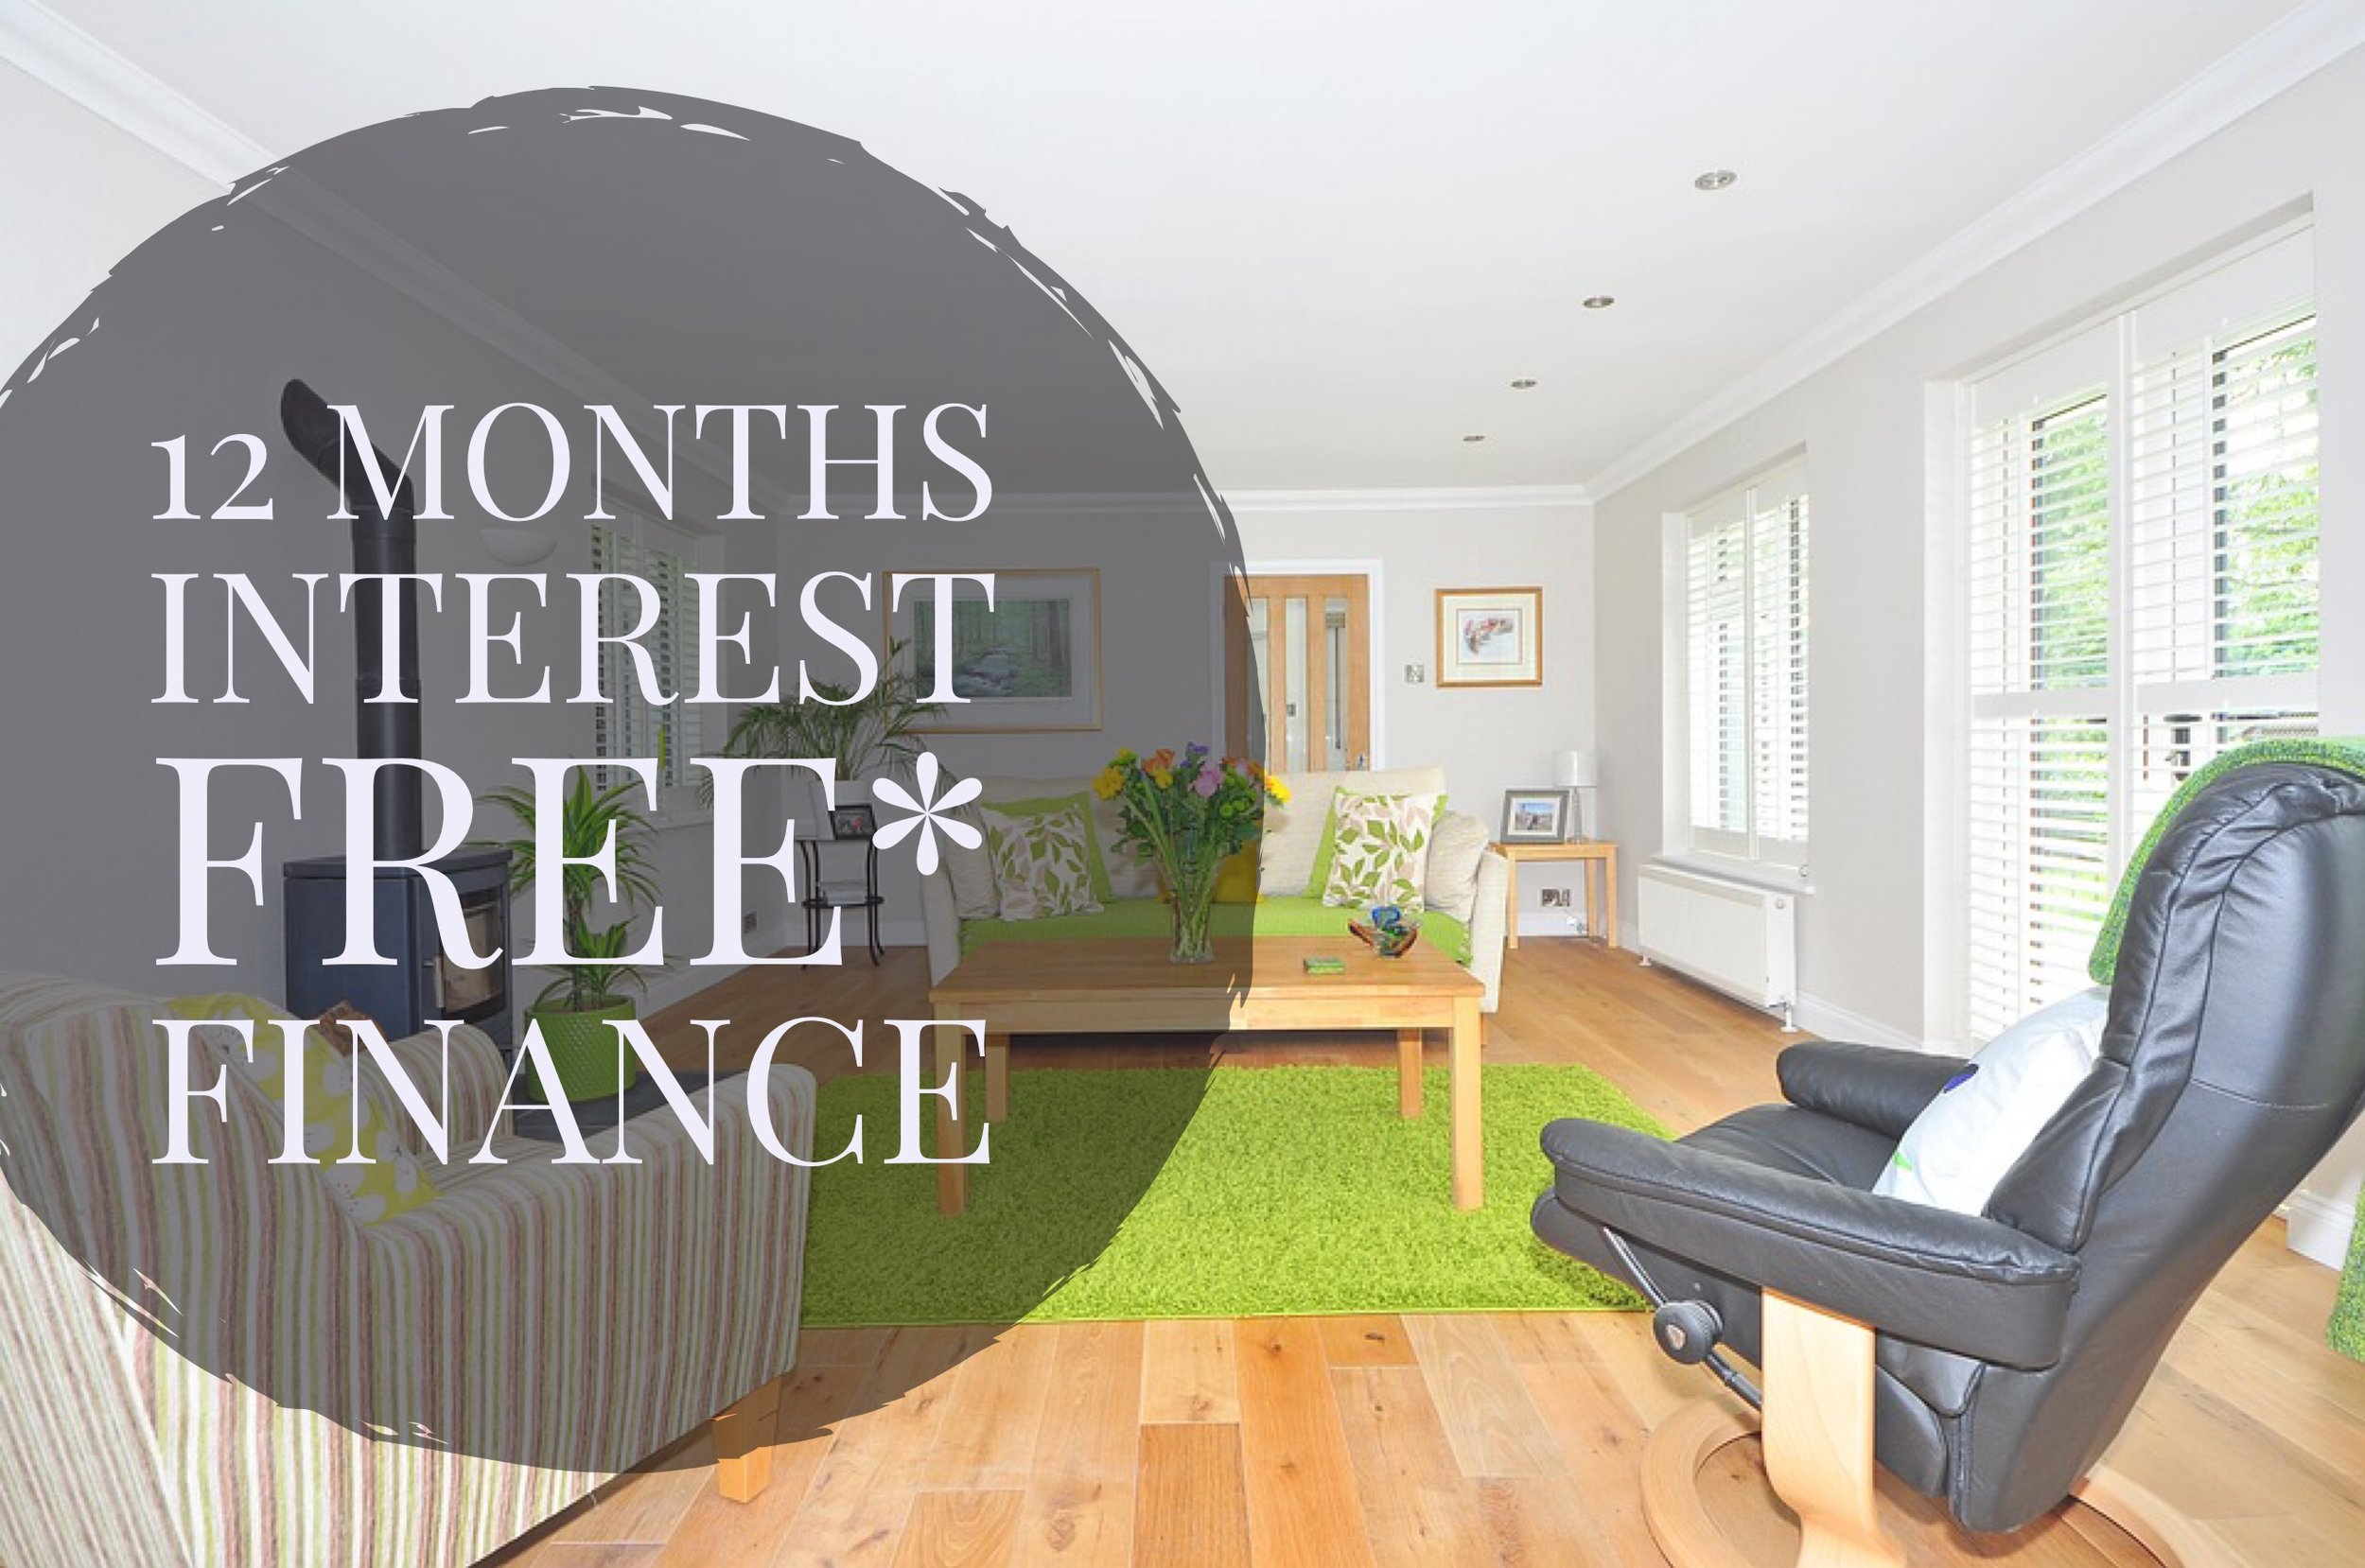 12 months Interest Free* finance available